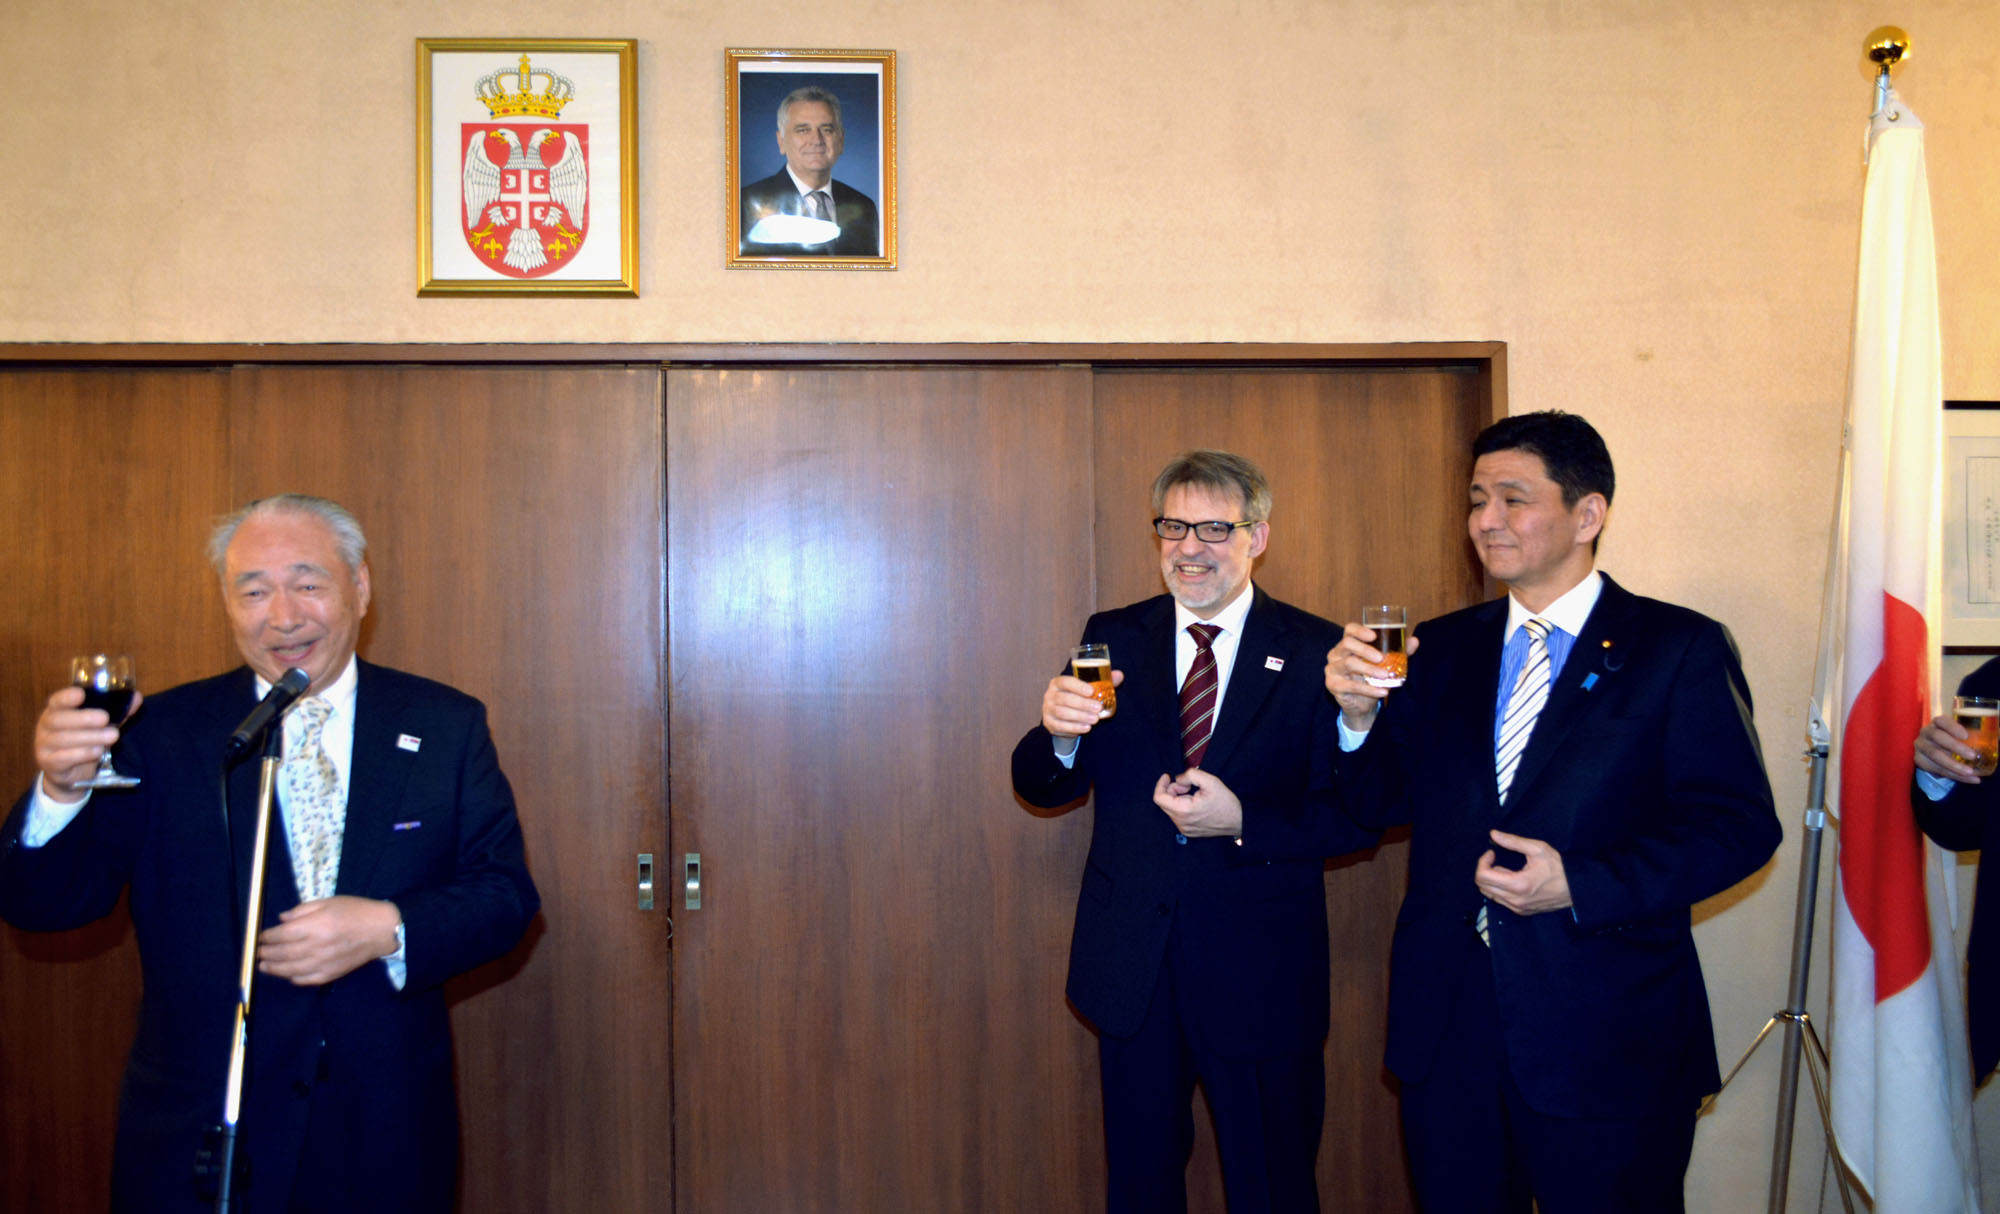 President of the Japan-Serbia Society and former Ambassador to Serbia Tadashi Nagai (left) raises his glass along with State Minister for Foreign Affairs Nobuo Kishi (right) and Serbia's Ambassador Nenad Glisic at a Serbian national day reception at the embassy on Feb. 15. | SERBIA EMBASSY